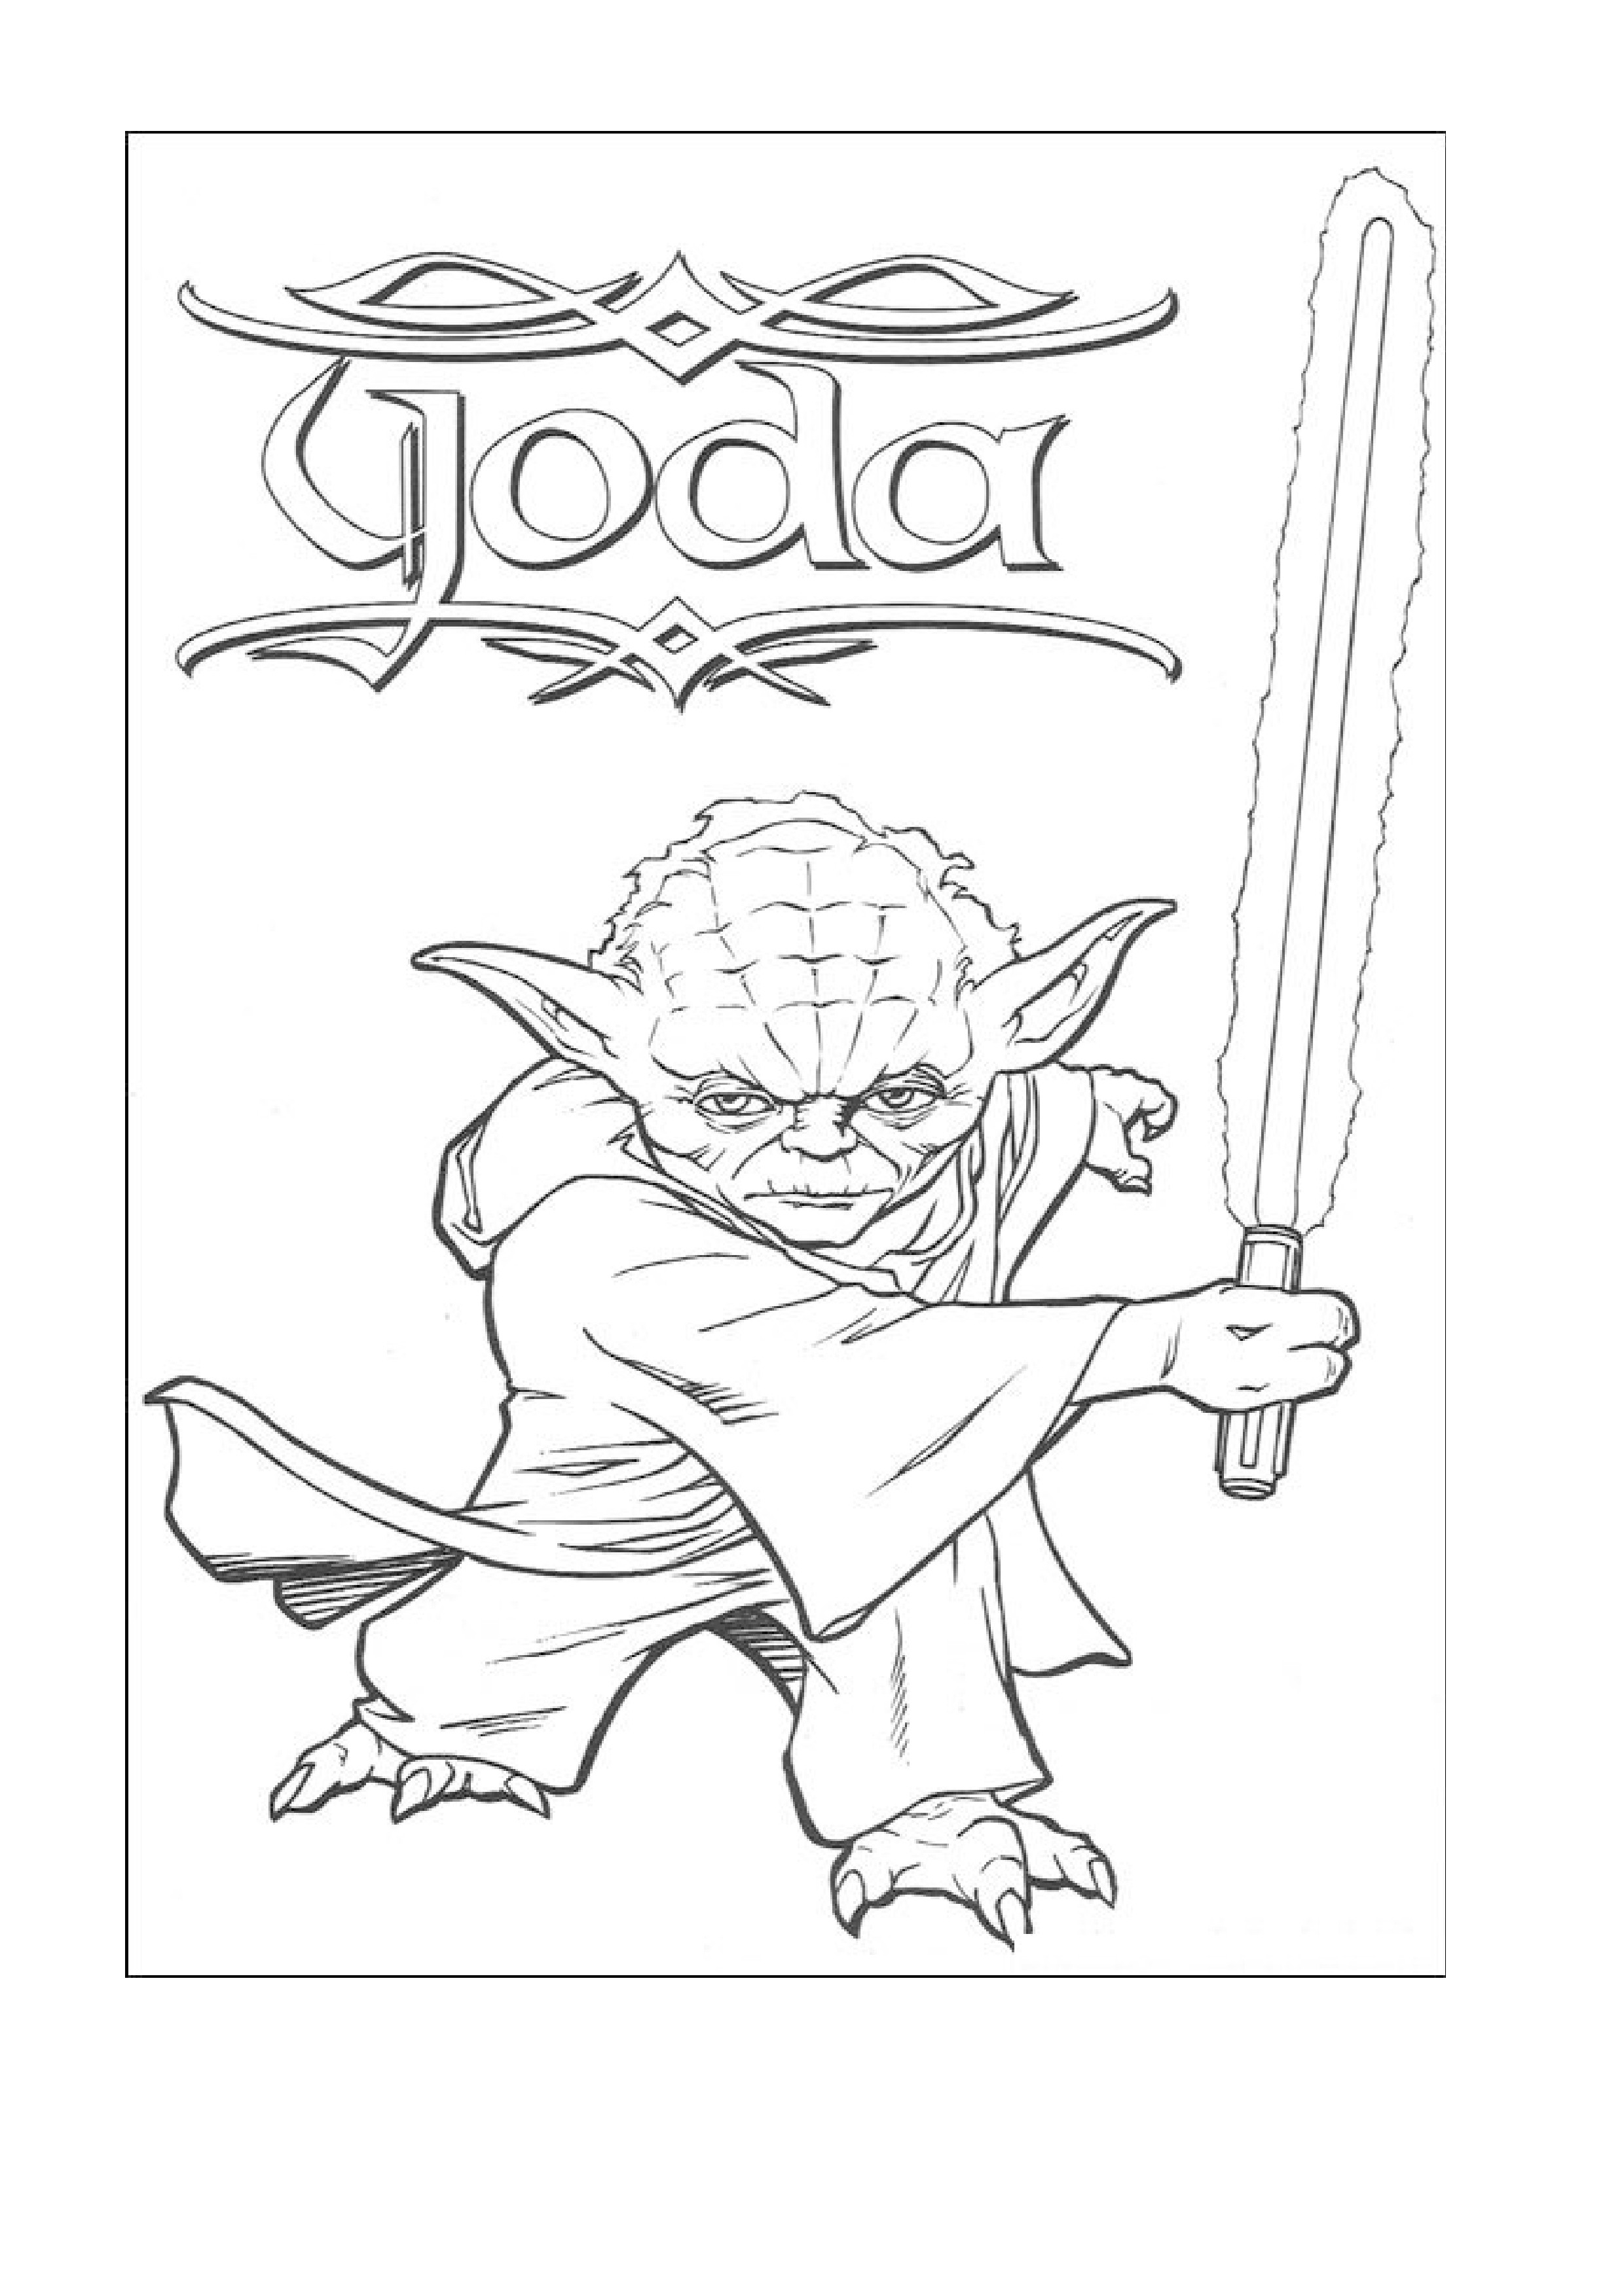 Star Wars Free Printable Coloring Pages  Star Wars Coloring Pages Free Printable Star Wars